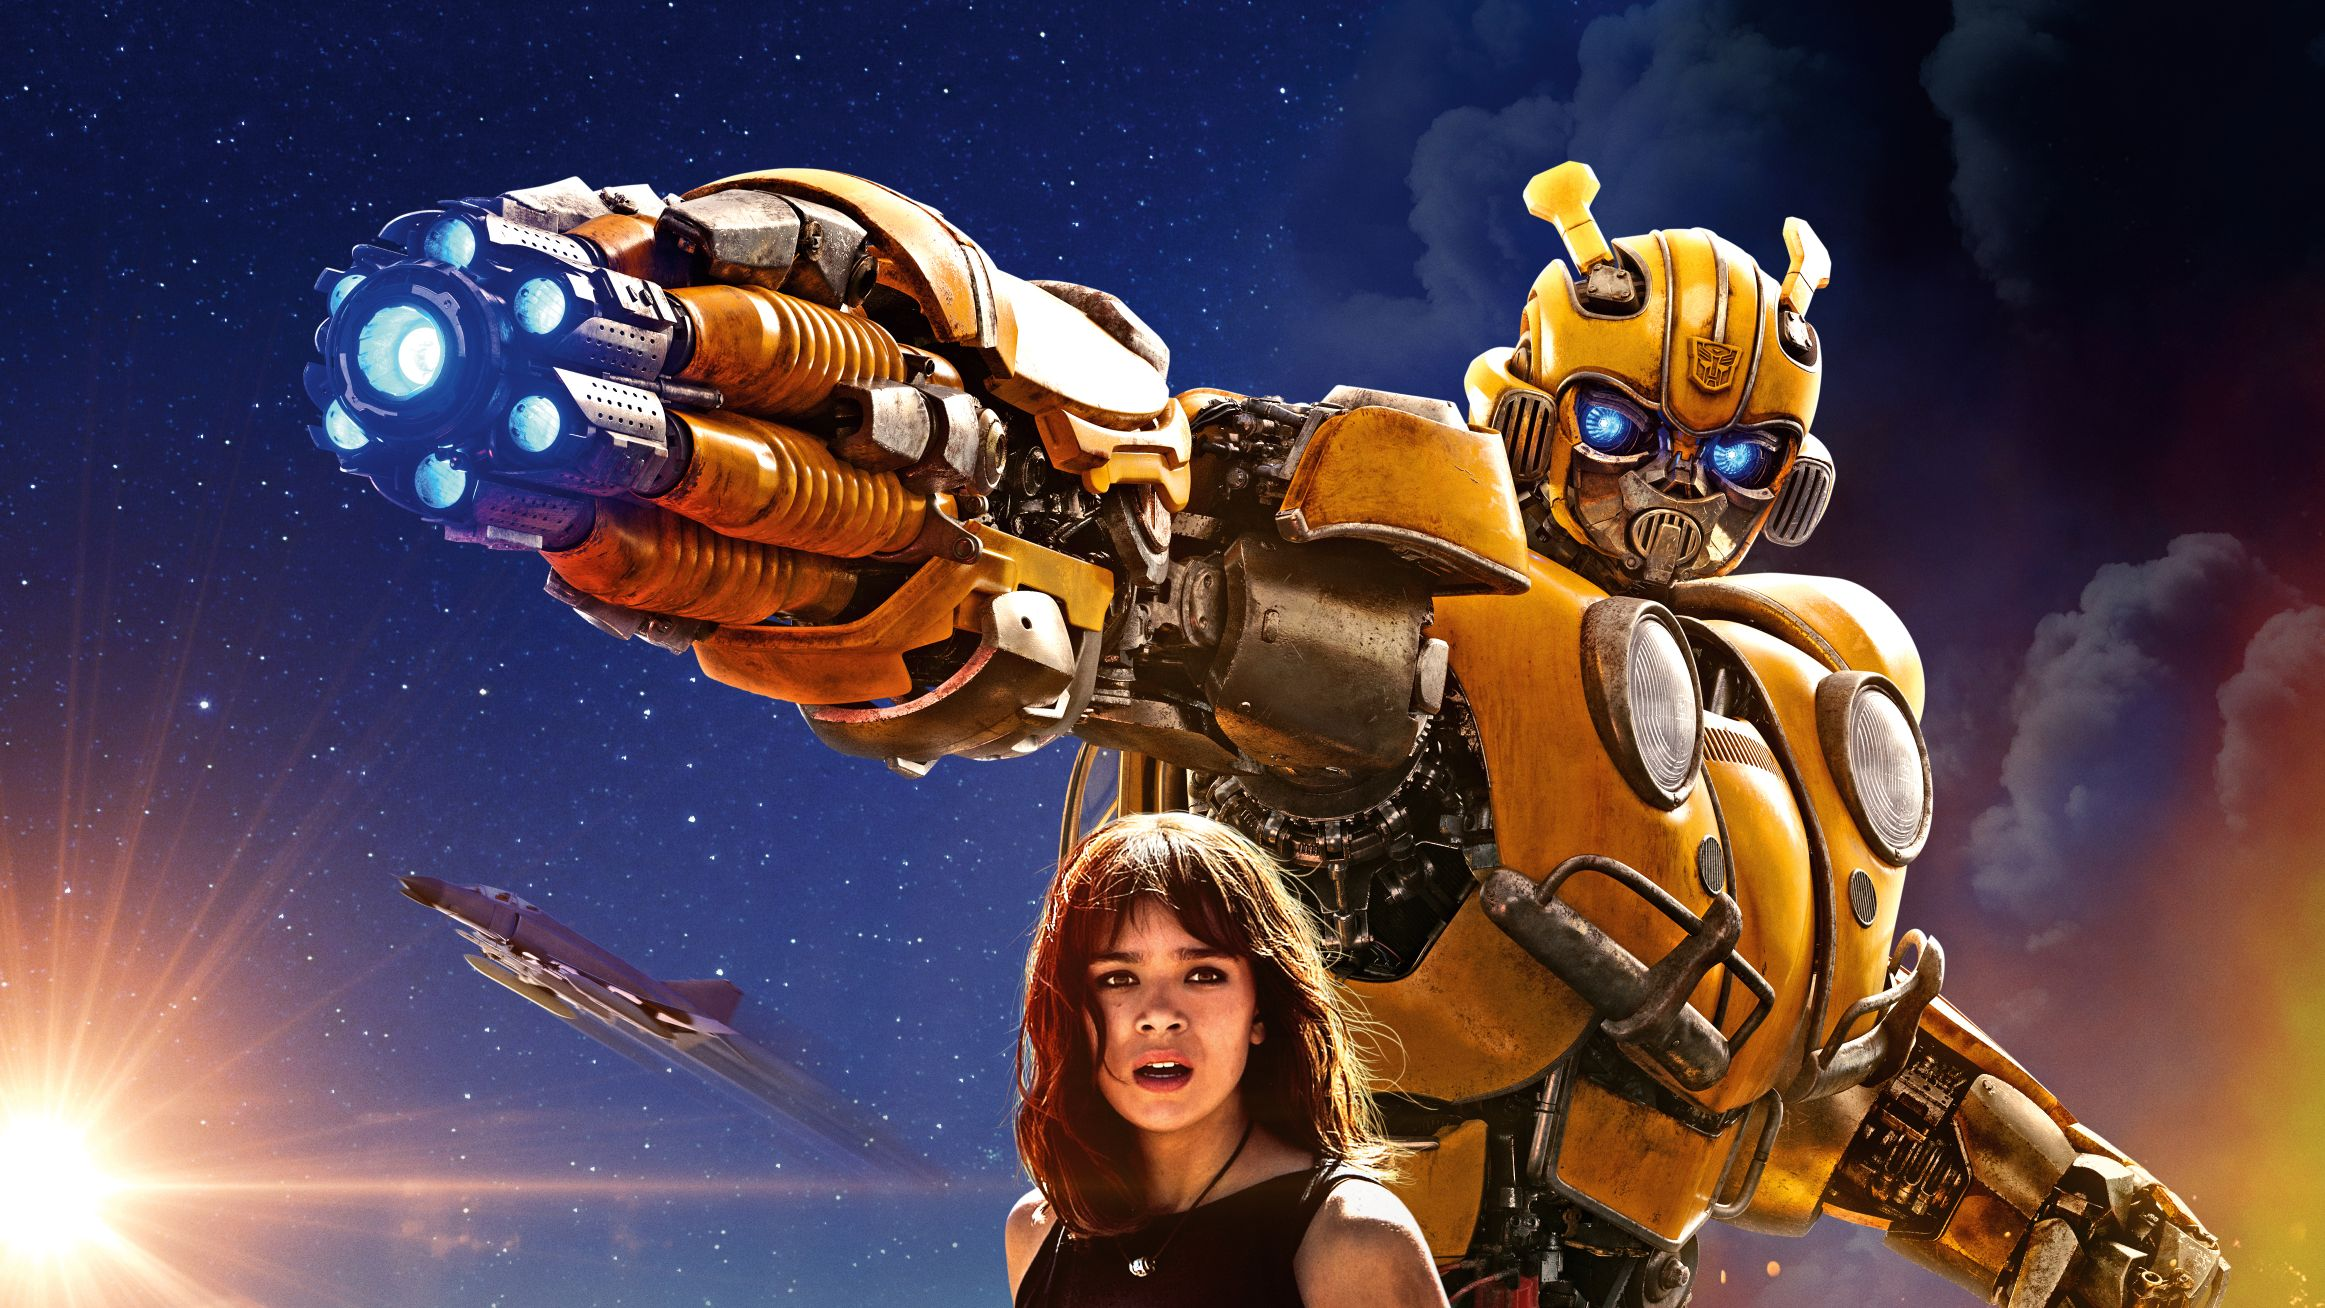 Bumble bee and his new girlfriend.jpg